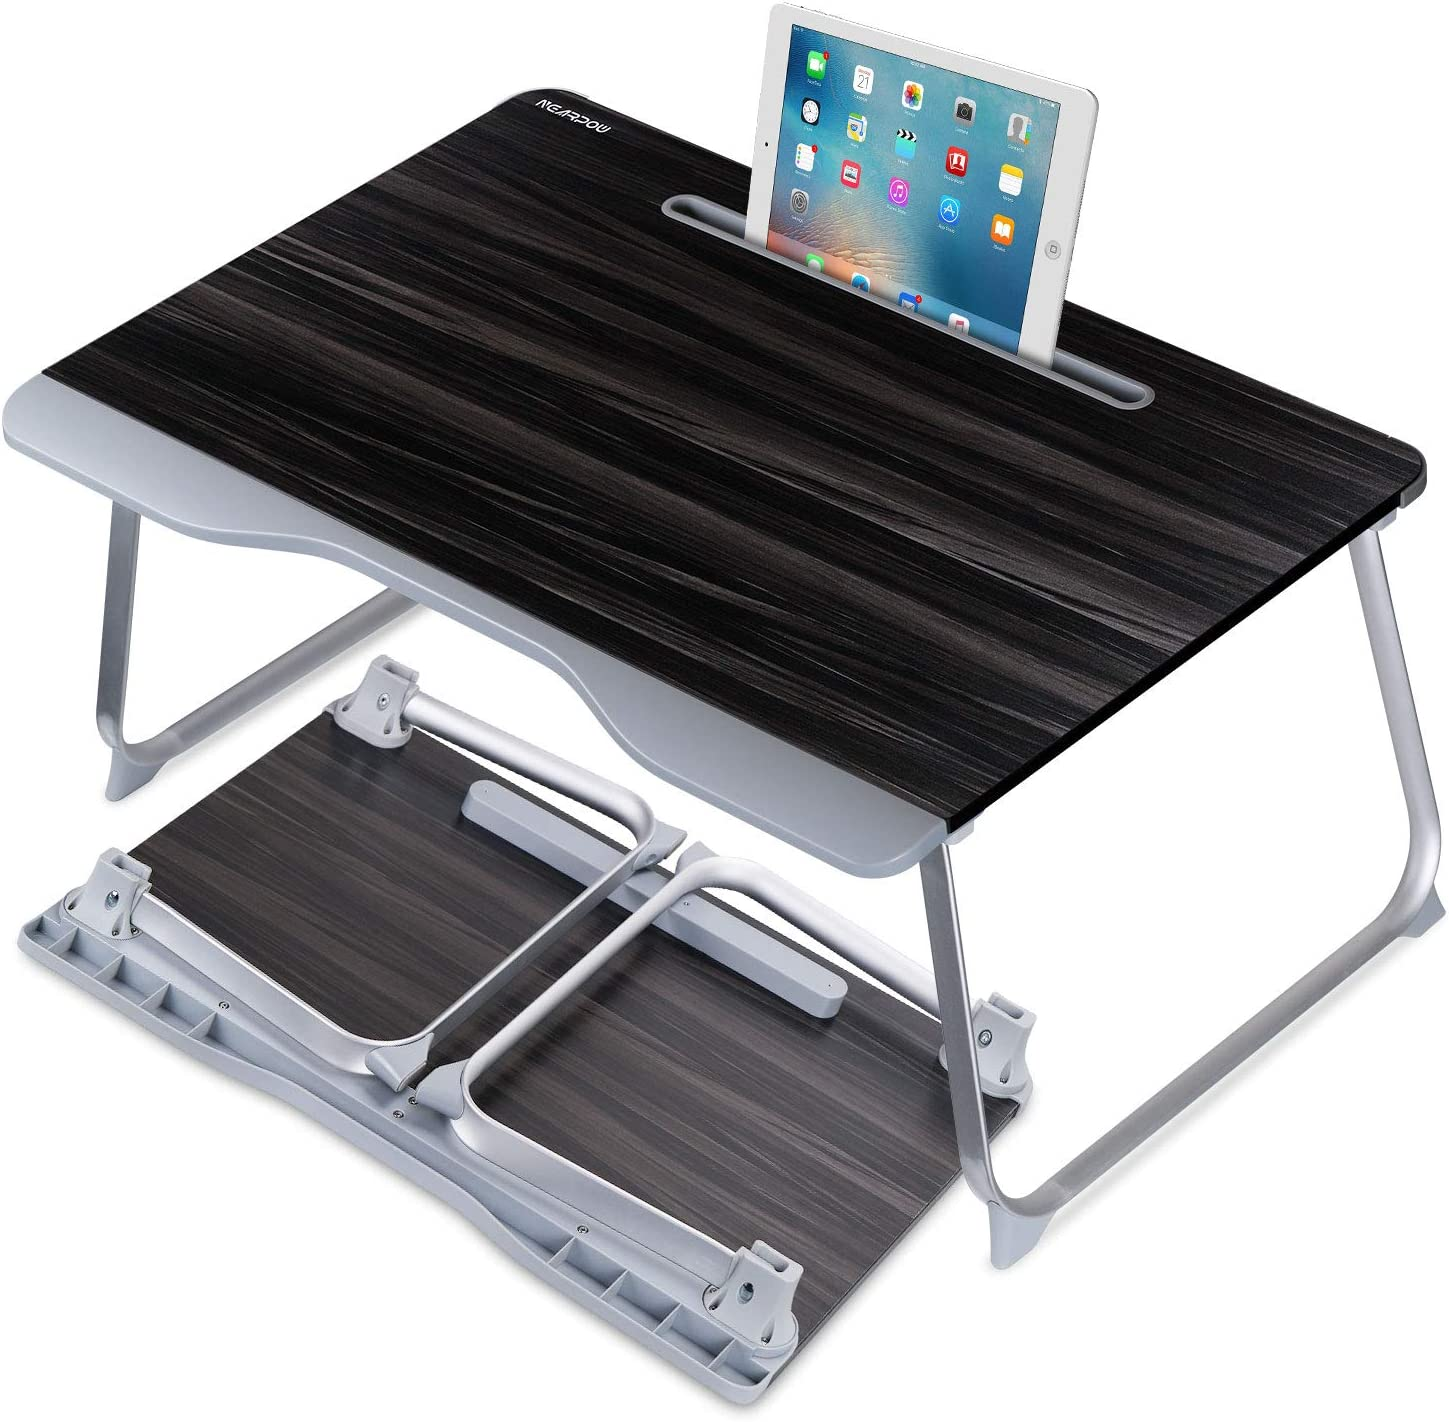 Laptop Desk for Bed, NEARPOW Laptop Bed Tray Table, Portable Folding Laptop Stand for Bed/Sofa/Couch/Floor for Writing Eating, Ergonomic Design and Large Surface Lap Desk with Tablet Slot for Adult